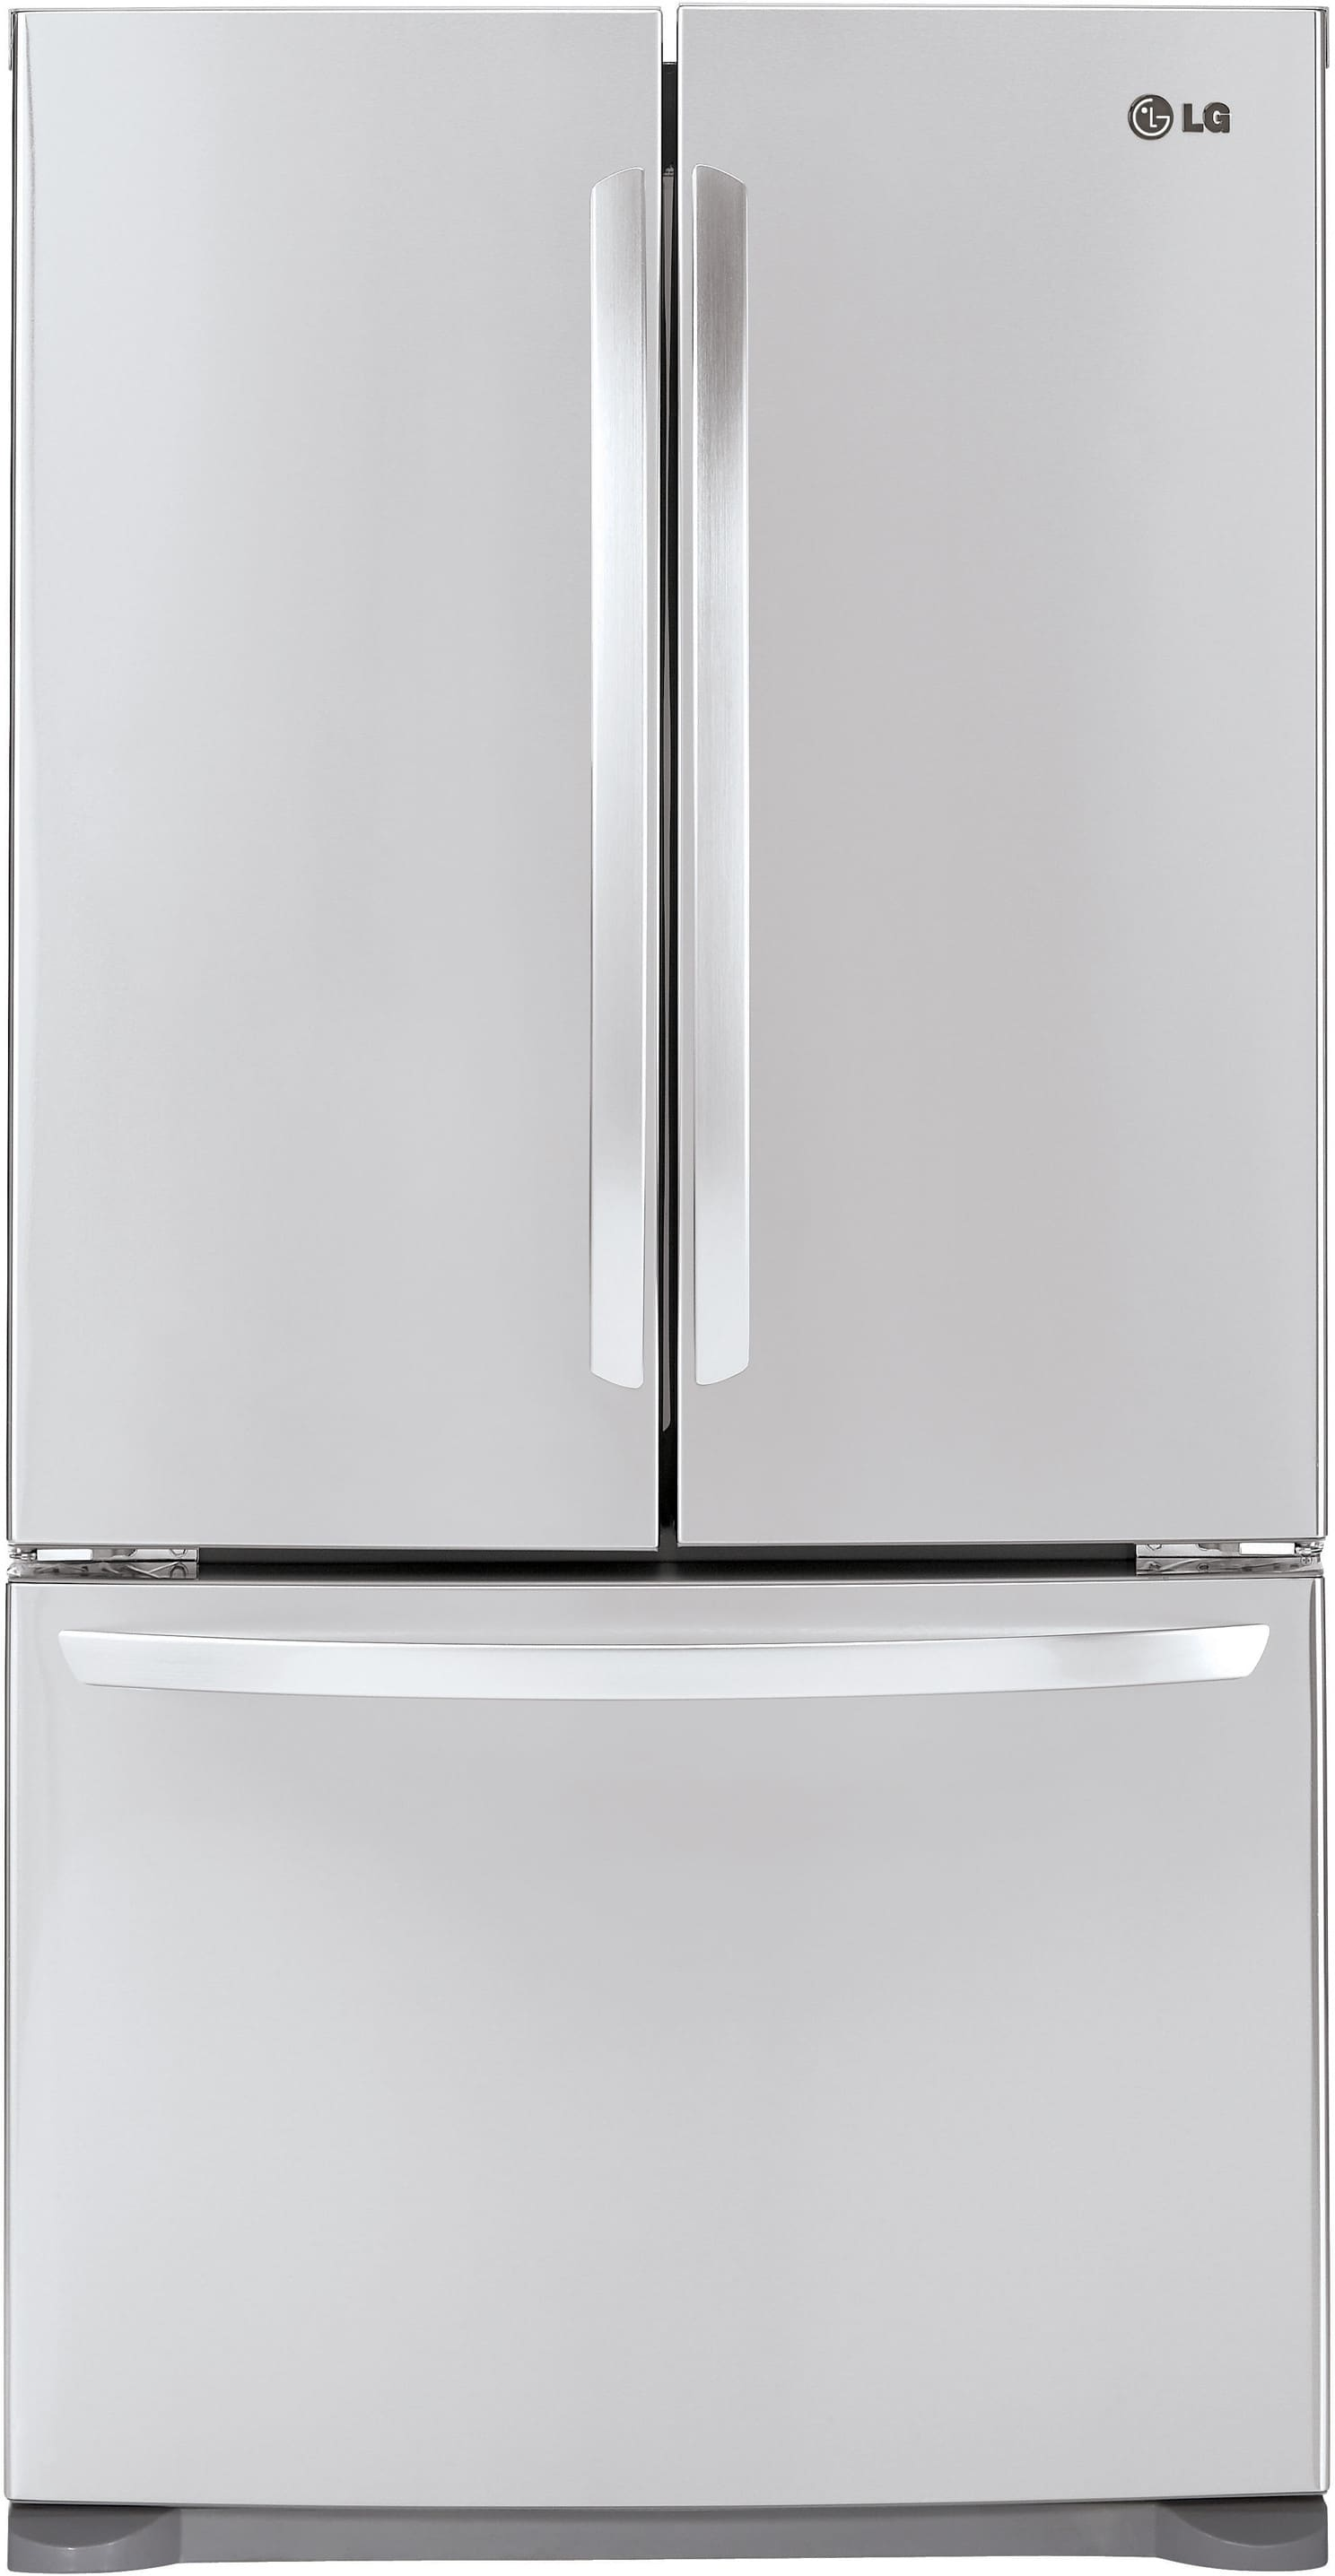 Lg lfc21776st 36 inch counter depth french door refrigerator with lg lfc21776st 36 inch counter depth french door refrigerator with iceplus freezing smartdiagnosis spillprotector multi air flow linear compressor rubansaba